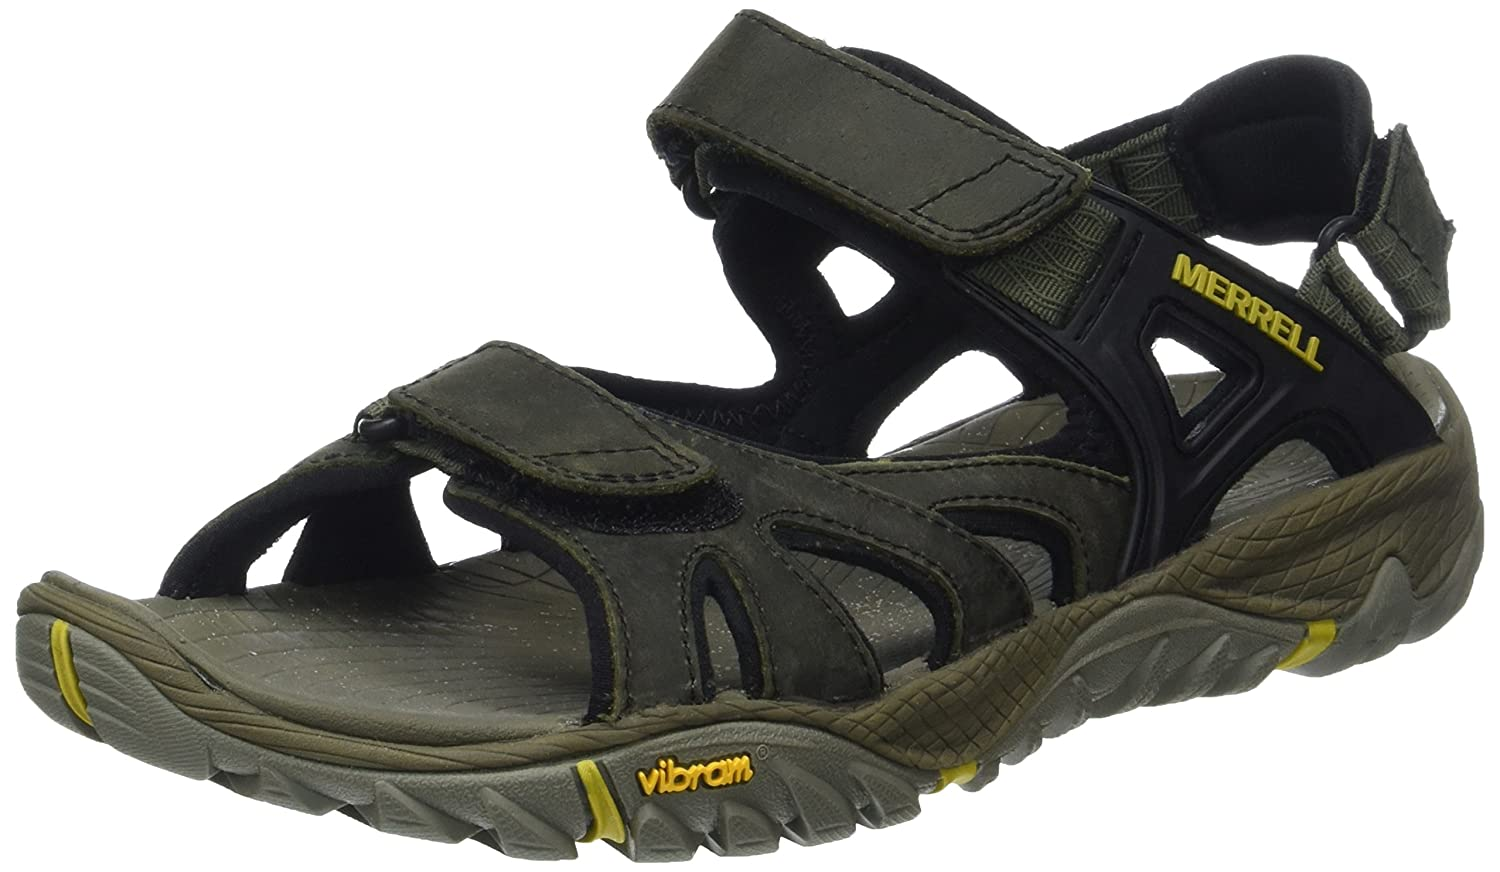 Merrell Men's All Out Blaze Sieve Convertible Water Sandal Merrell Footwear J32847